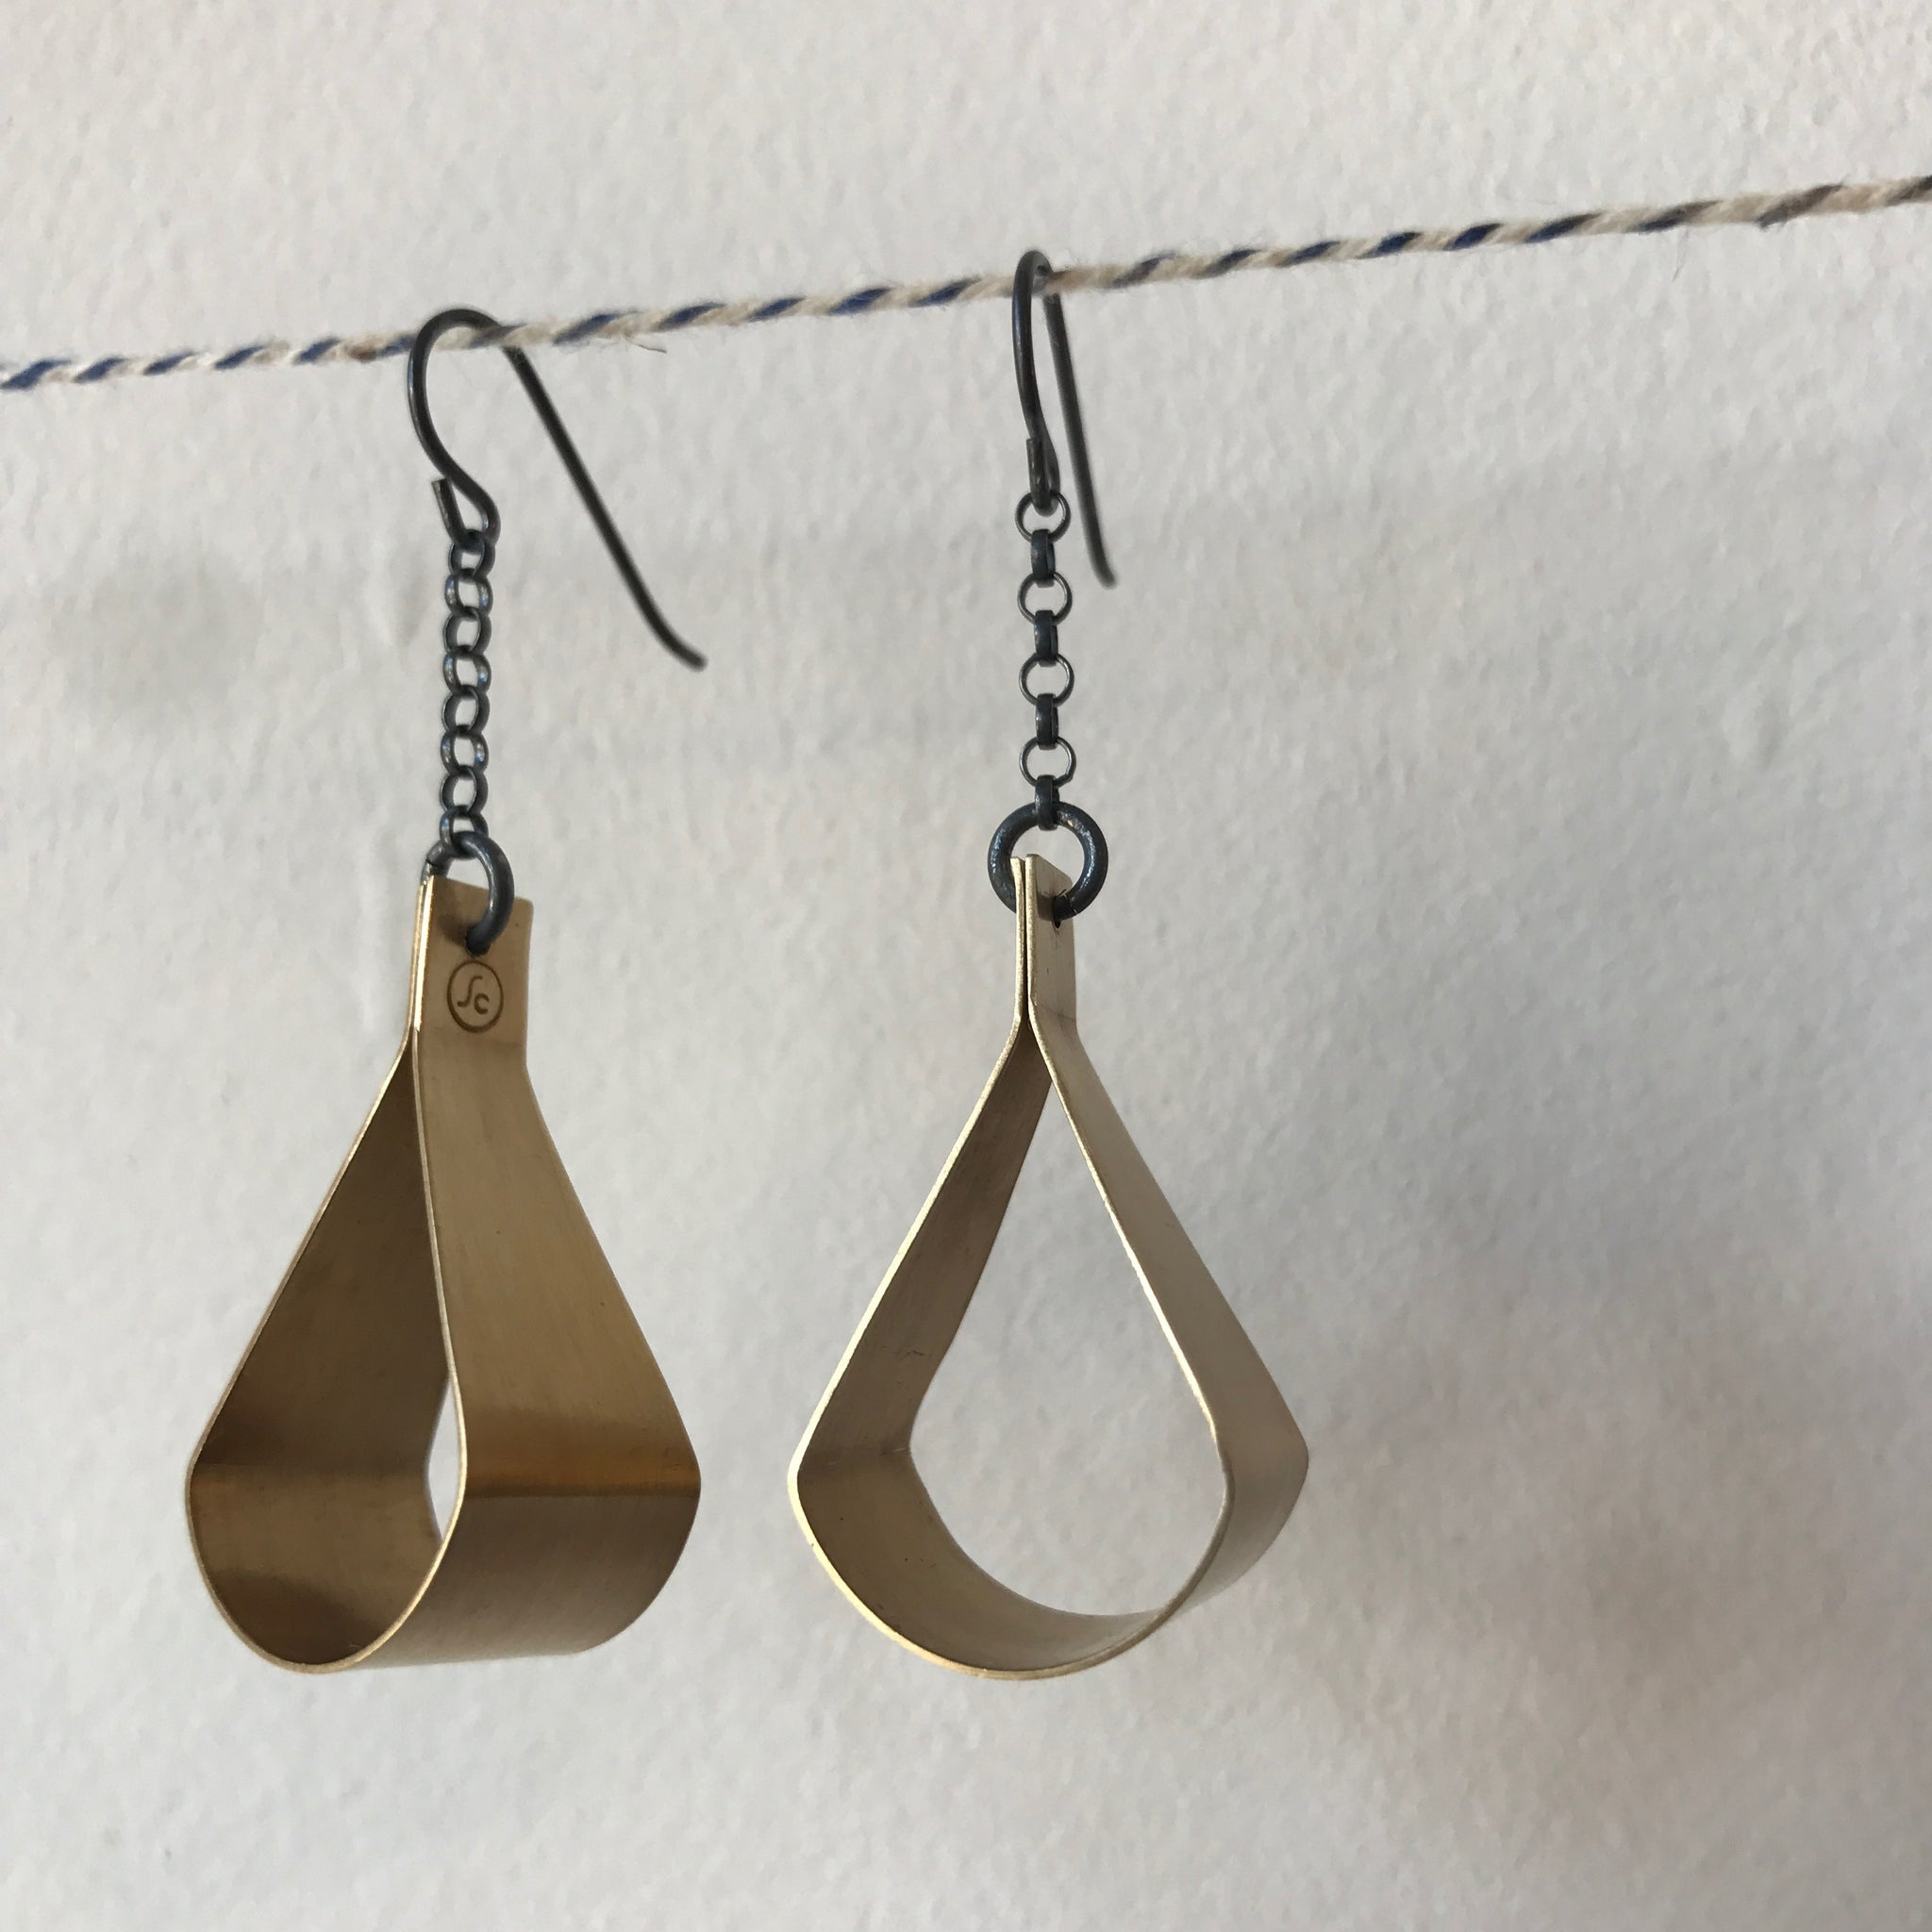 Bent Arc Chain Earrings in Brass by Silvercocoon - Upstate MN